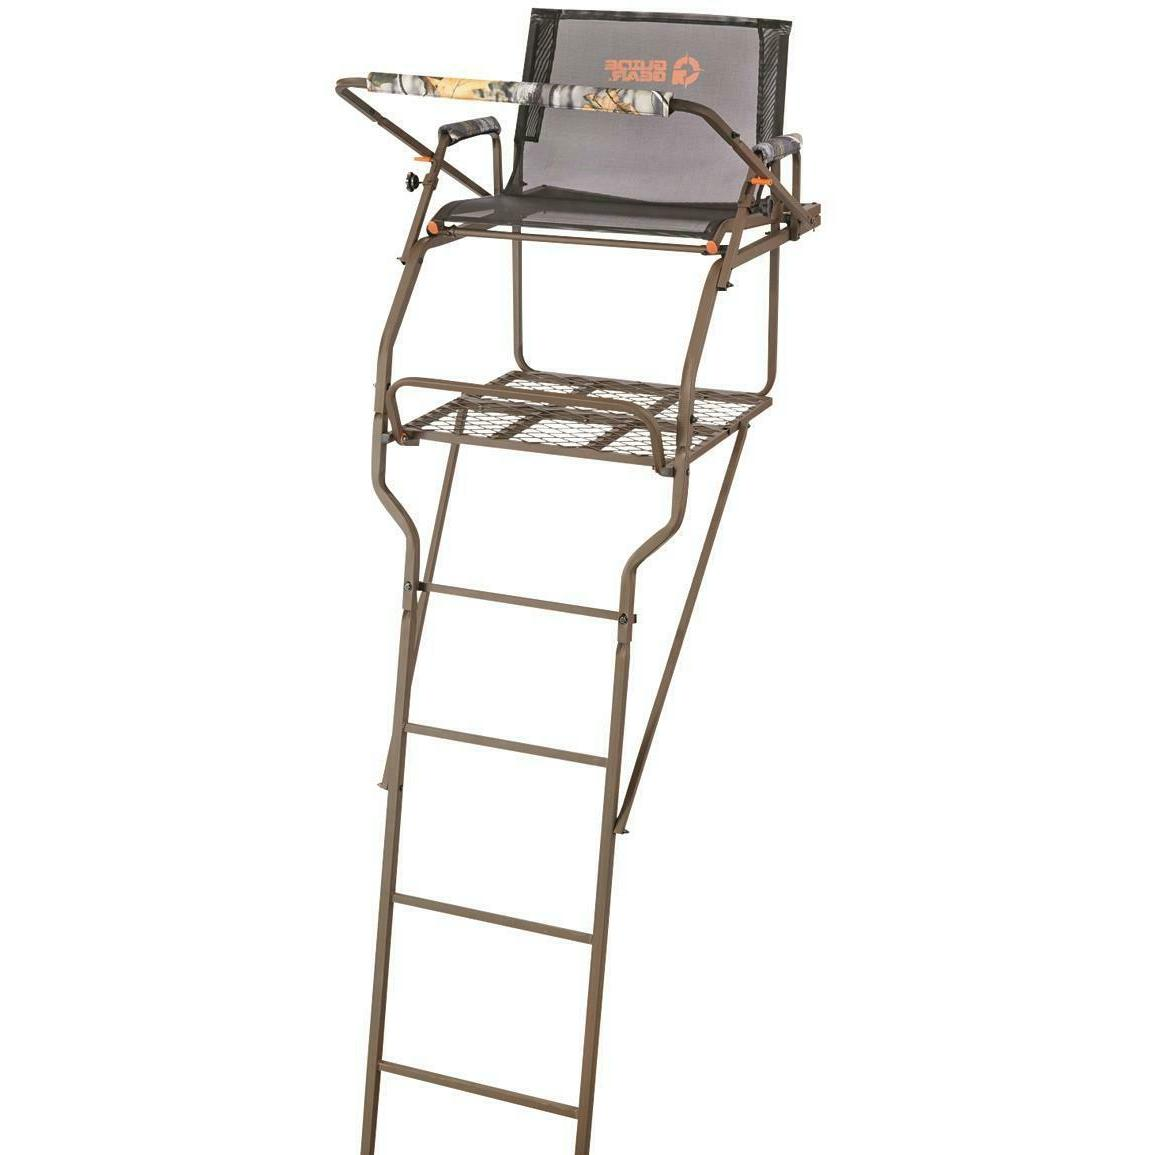 NEW! Guide Gear 18' Ultra Comfort Ladder Tree Stand